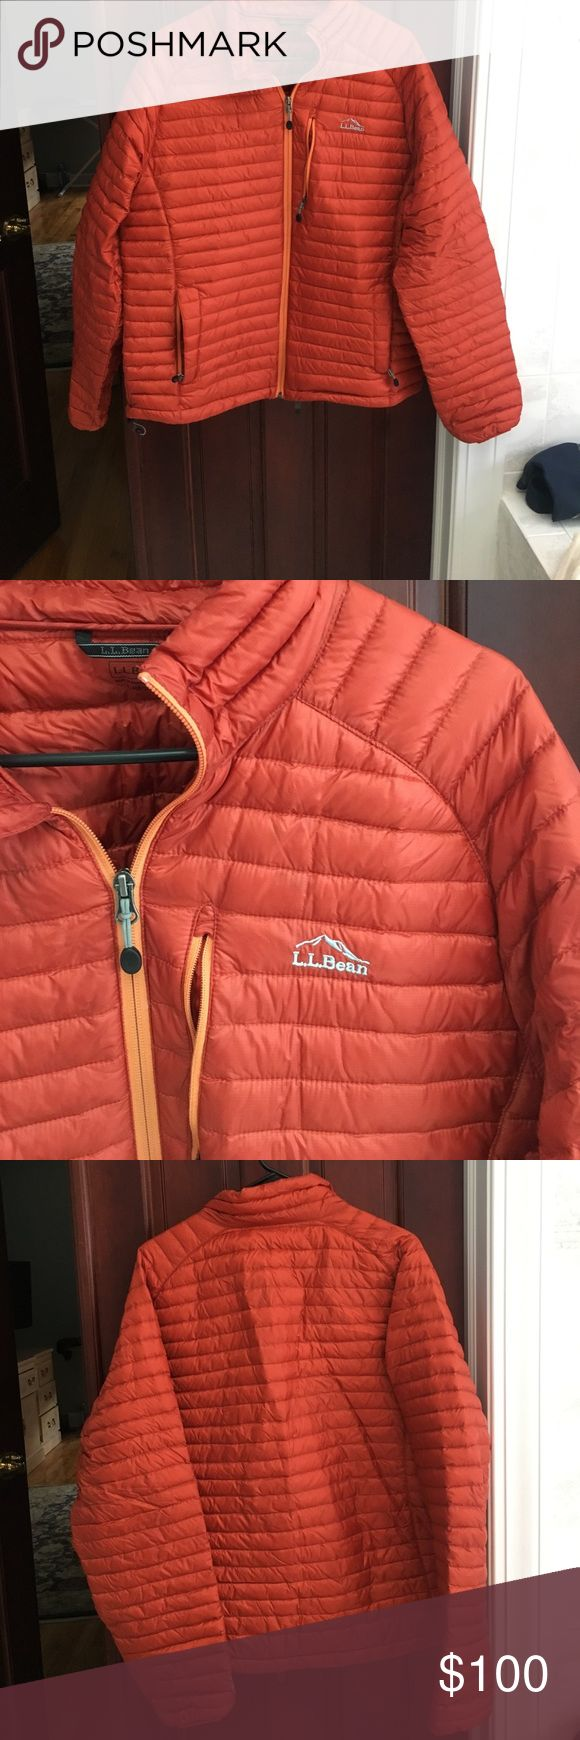 LL Bean men's puffer jacket. Orange. Great condition, new with tags but the tags are detached. L.L. Bean Jackets & Coats Puffers